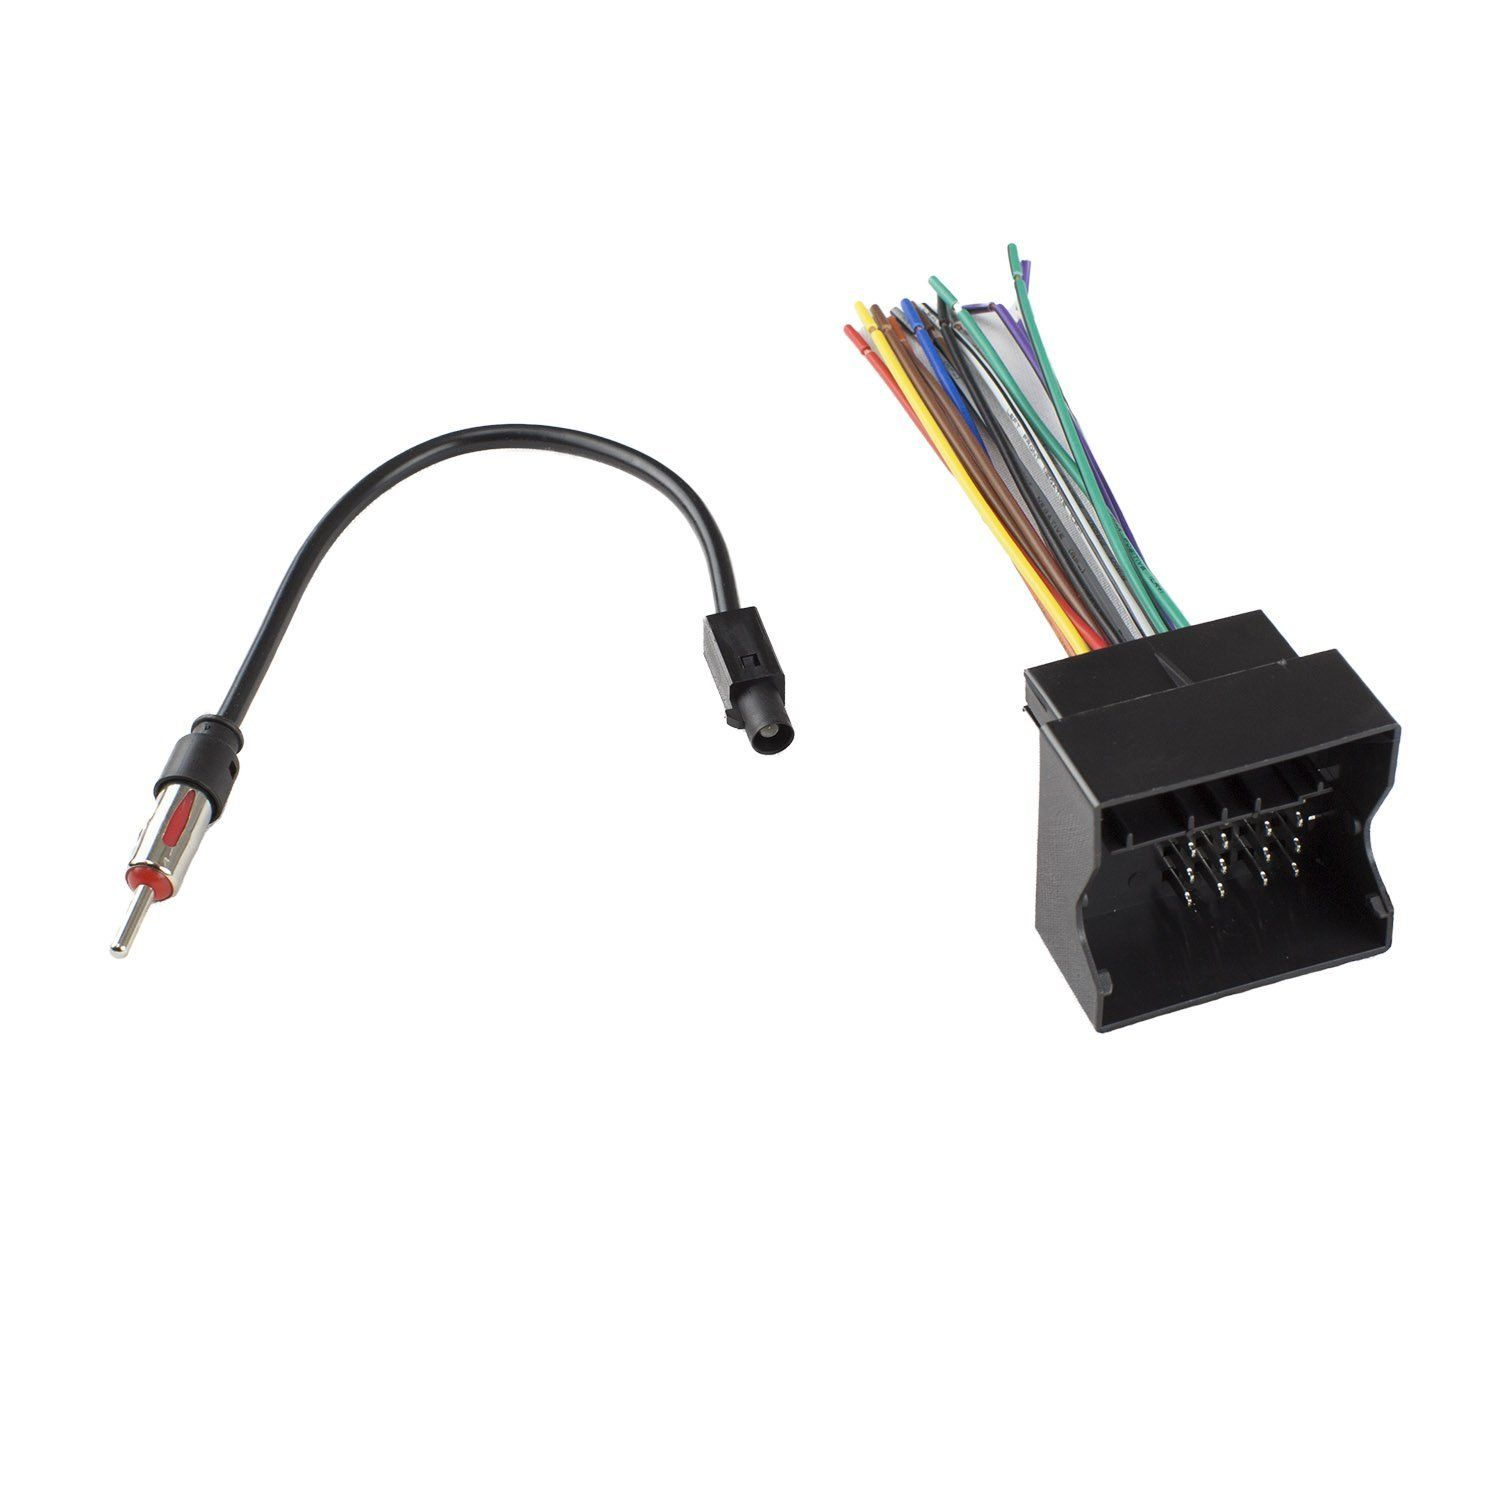 hight resolution of novosonics vwf 1010 vw7 wiring harness for mini cooper package includes vwf 1010 wire harness vw 7 radio antenna adapter connect an aftermarket stereo to